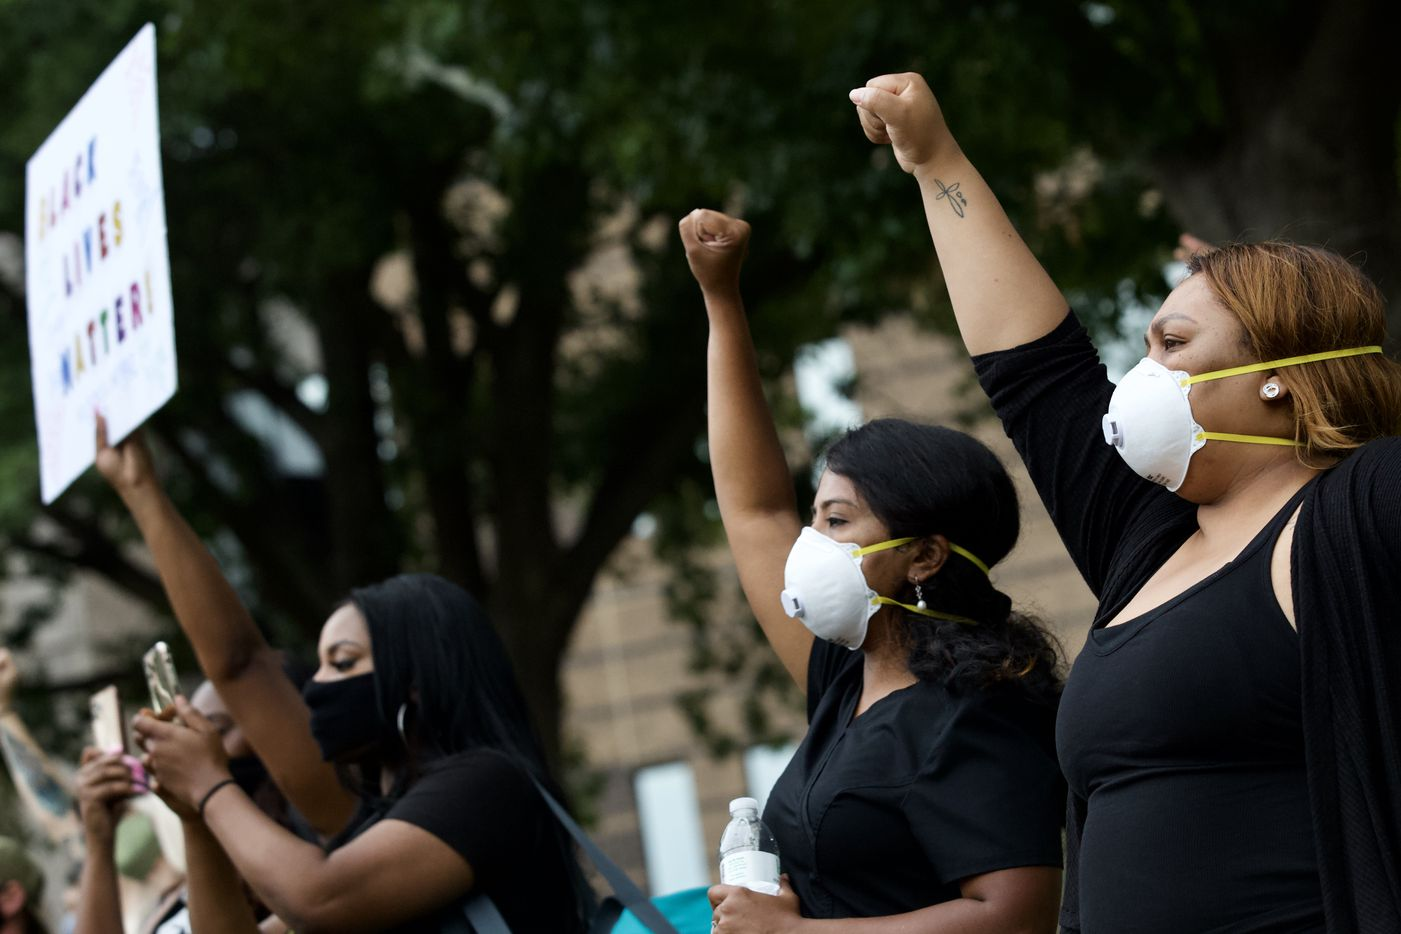 Lanie Alexander (far right) and Lalitha Natarajan (2nd from right) join protesters gather outside the Frank Crowley Courts building past the city's 7 p.m. curfew during a demonstration denouncing police brutality on Monday, June 1, 2020.